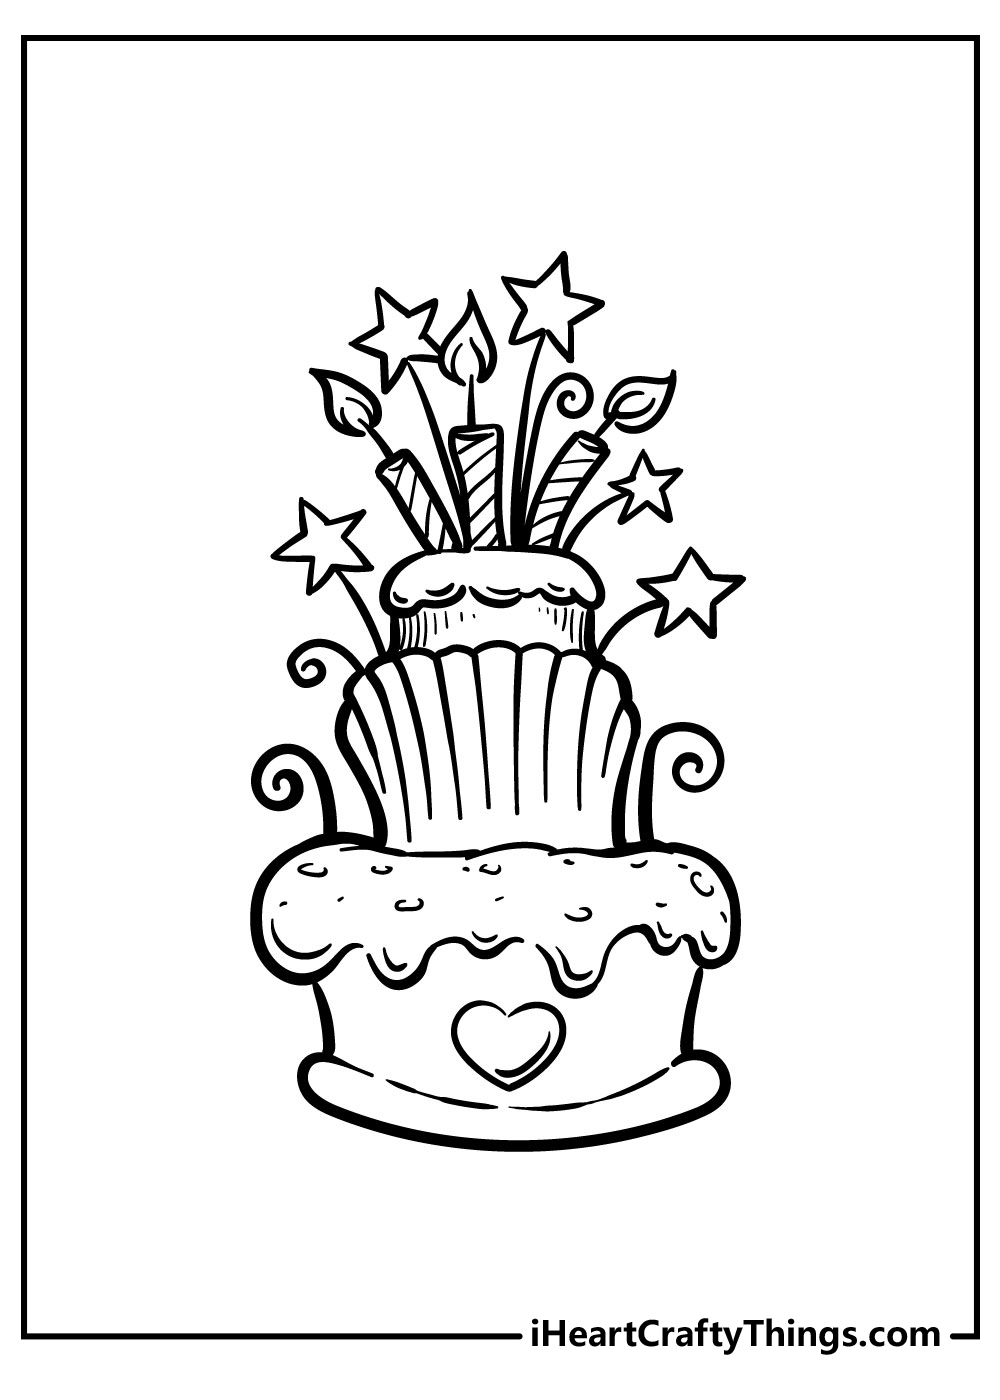 shopkins birthday cake coloring pages